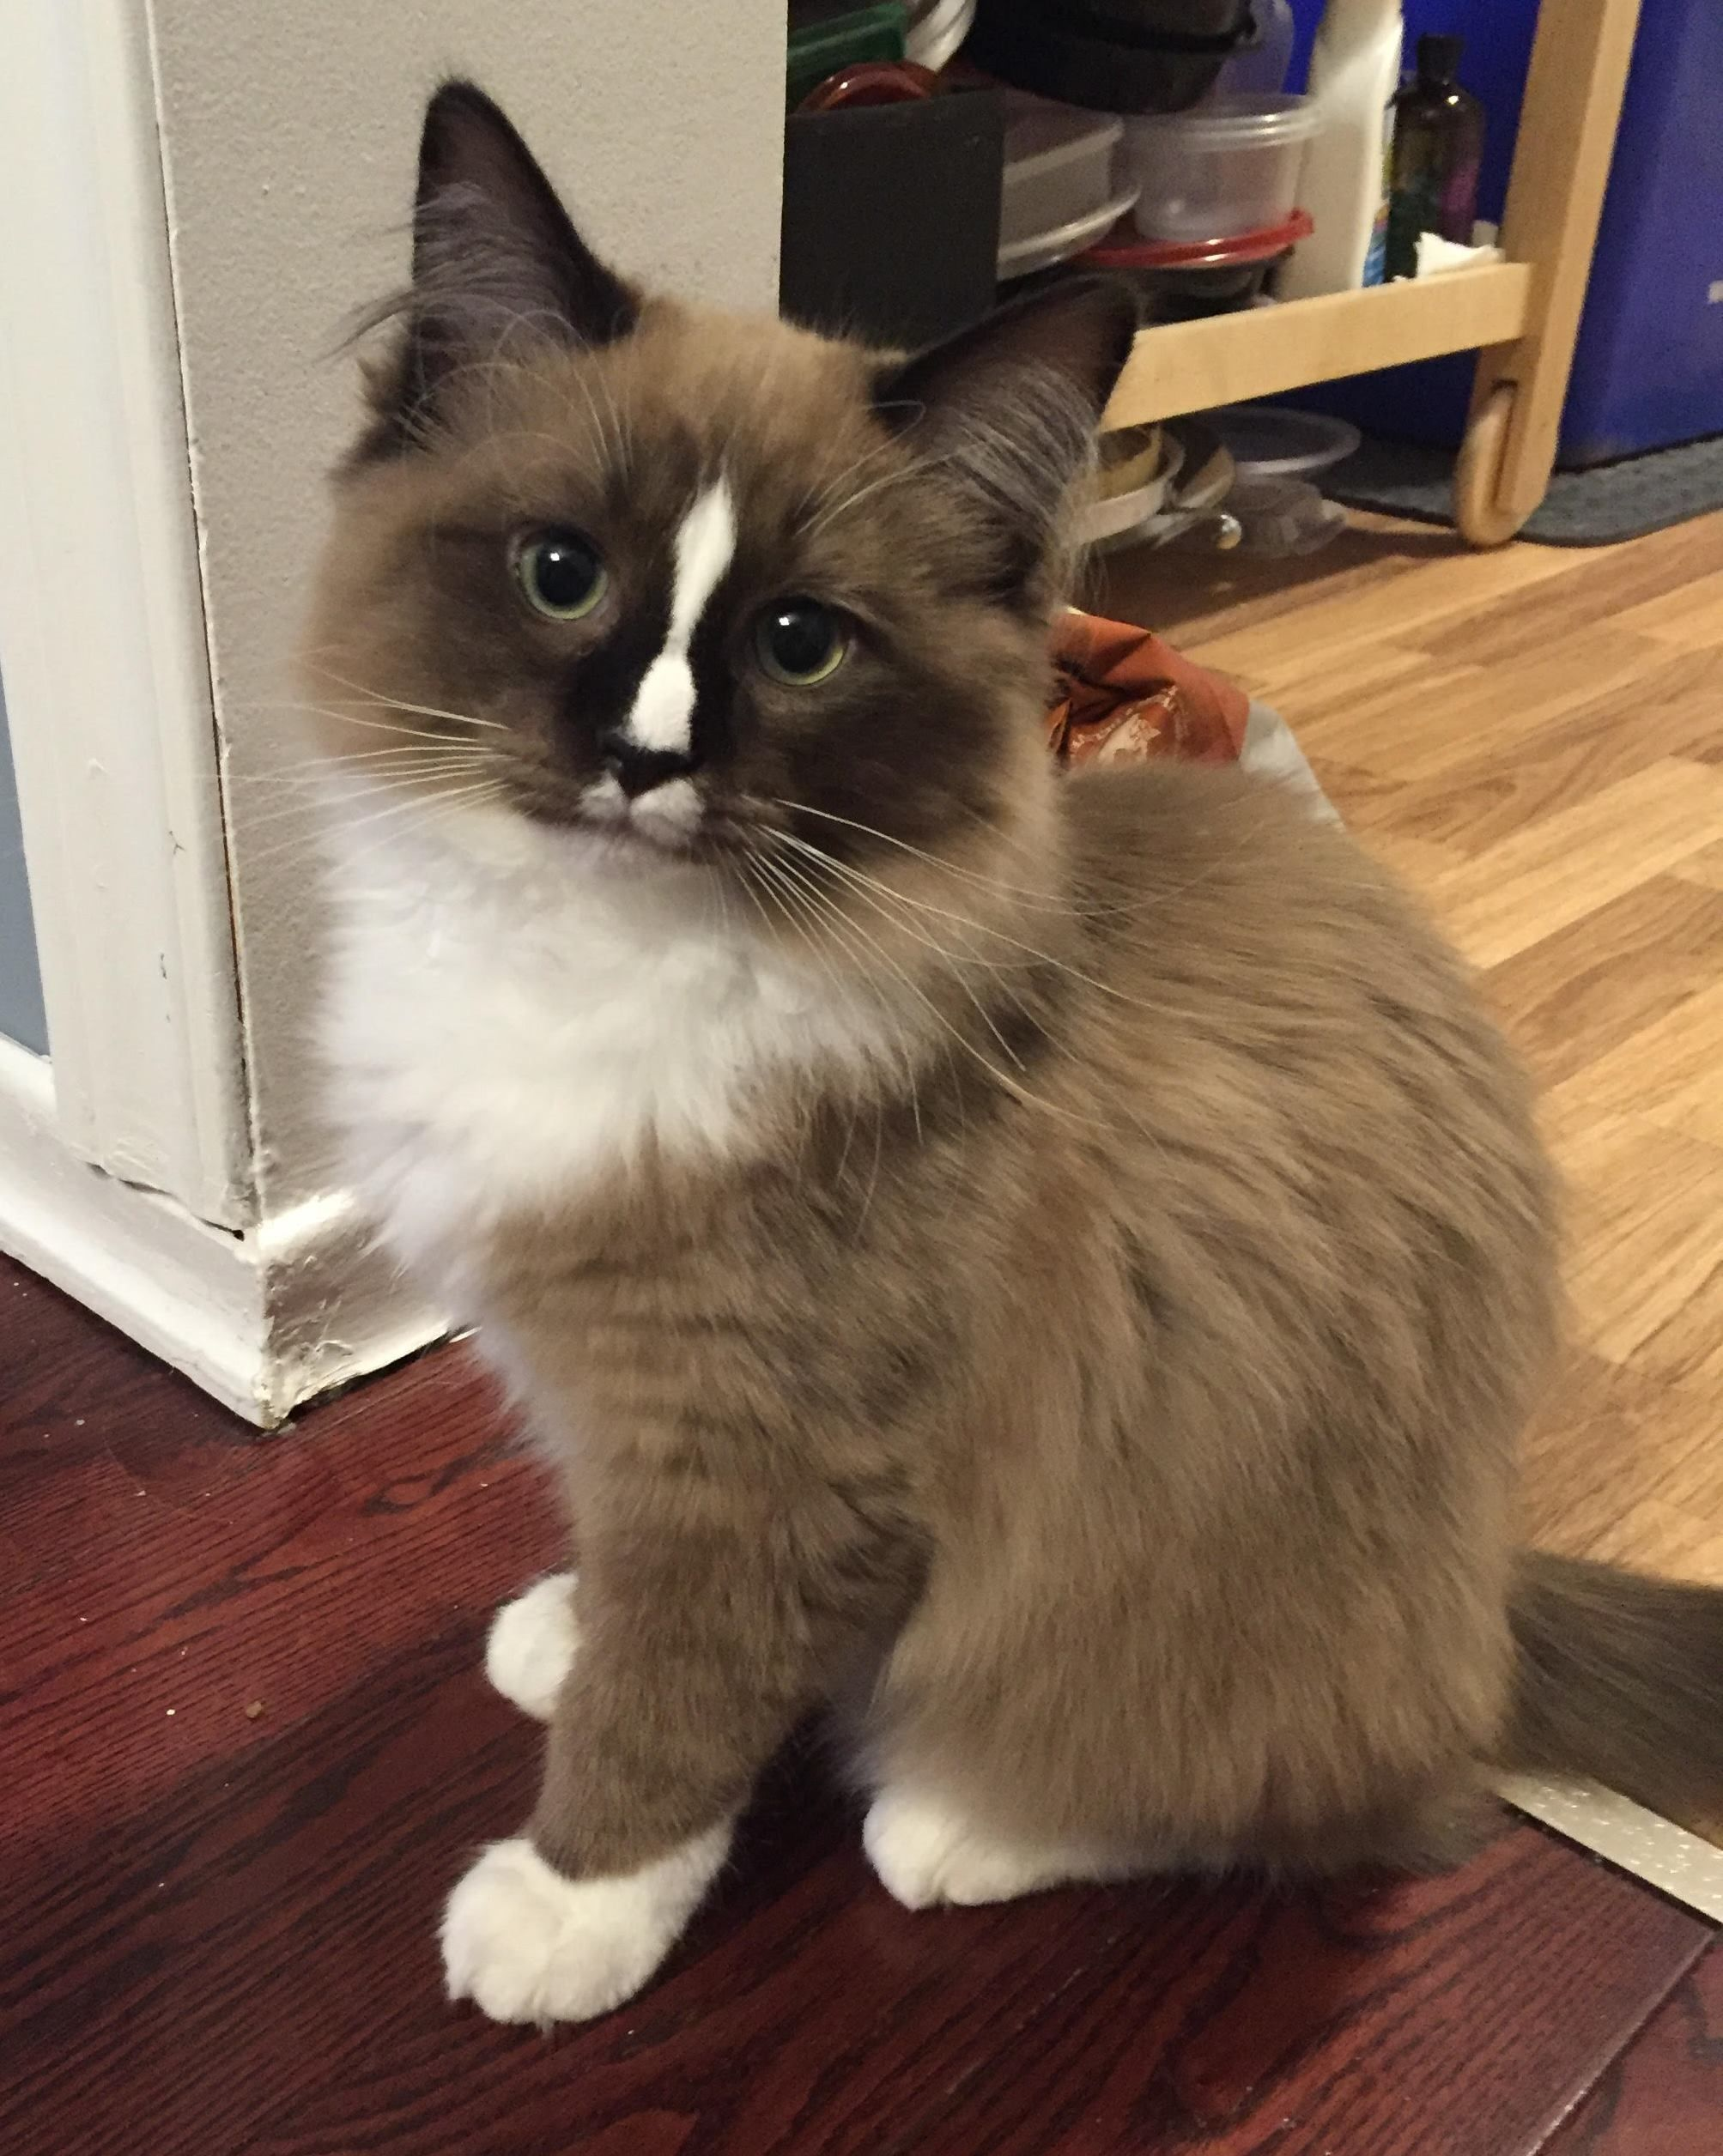 Congrats On Your First Ragdoll And How Awesome That You Are Now Getting A Second Raggy Ragdoll Kitten Ragdoll Cat Kittens